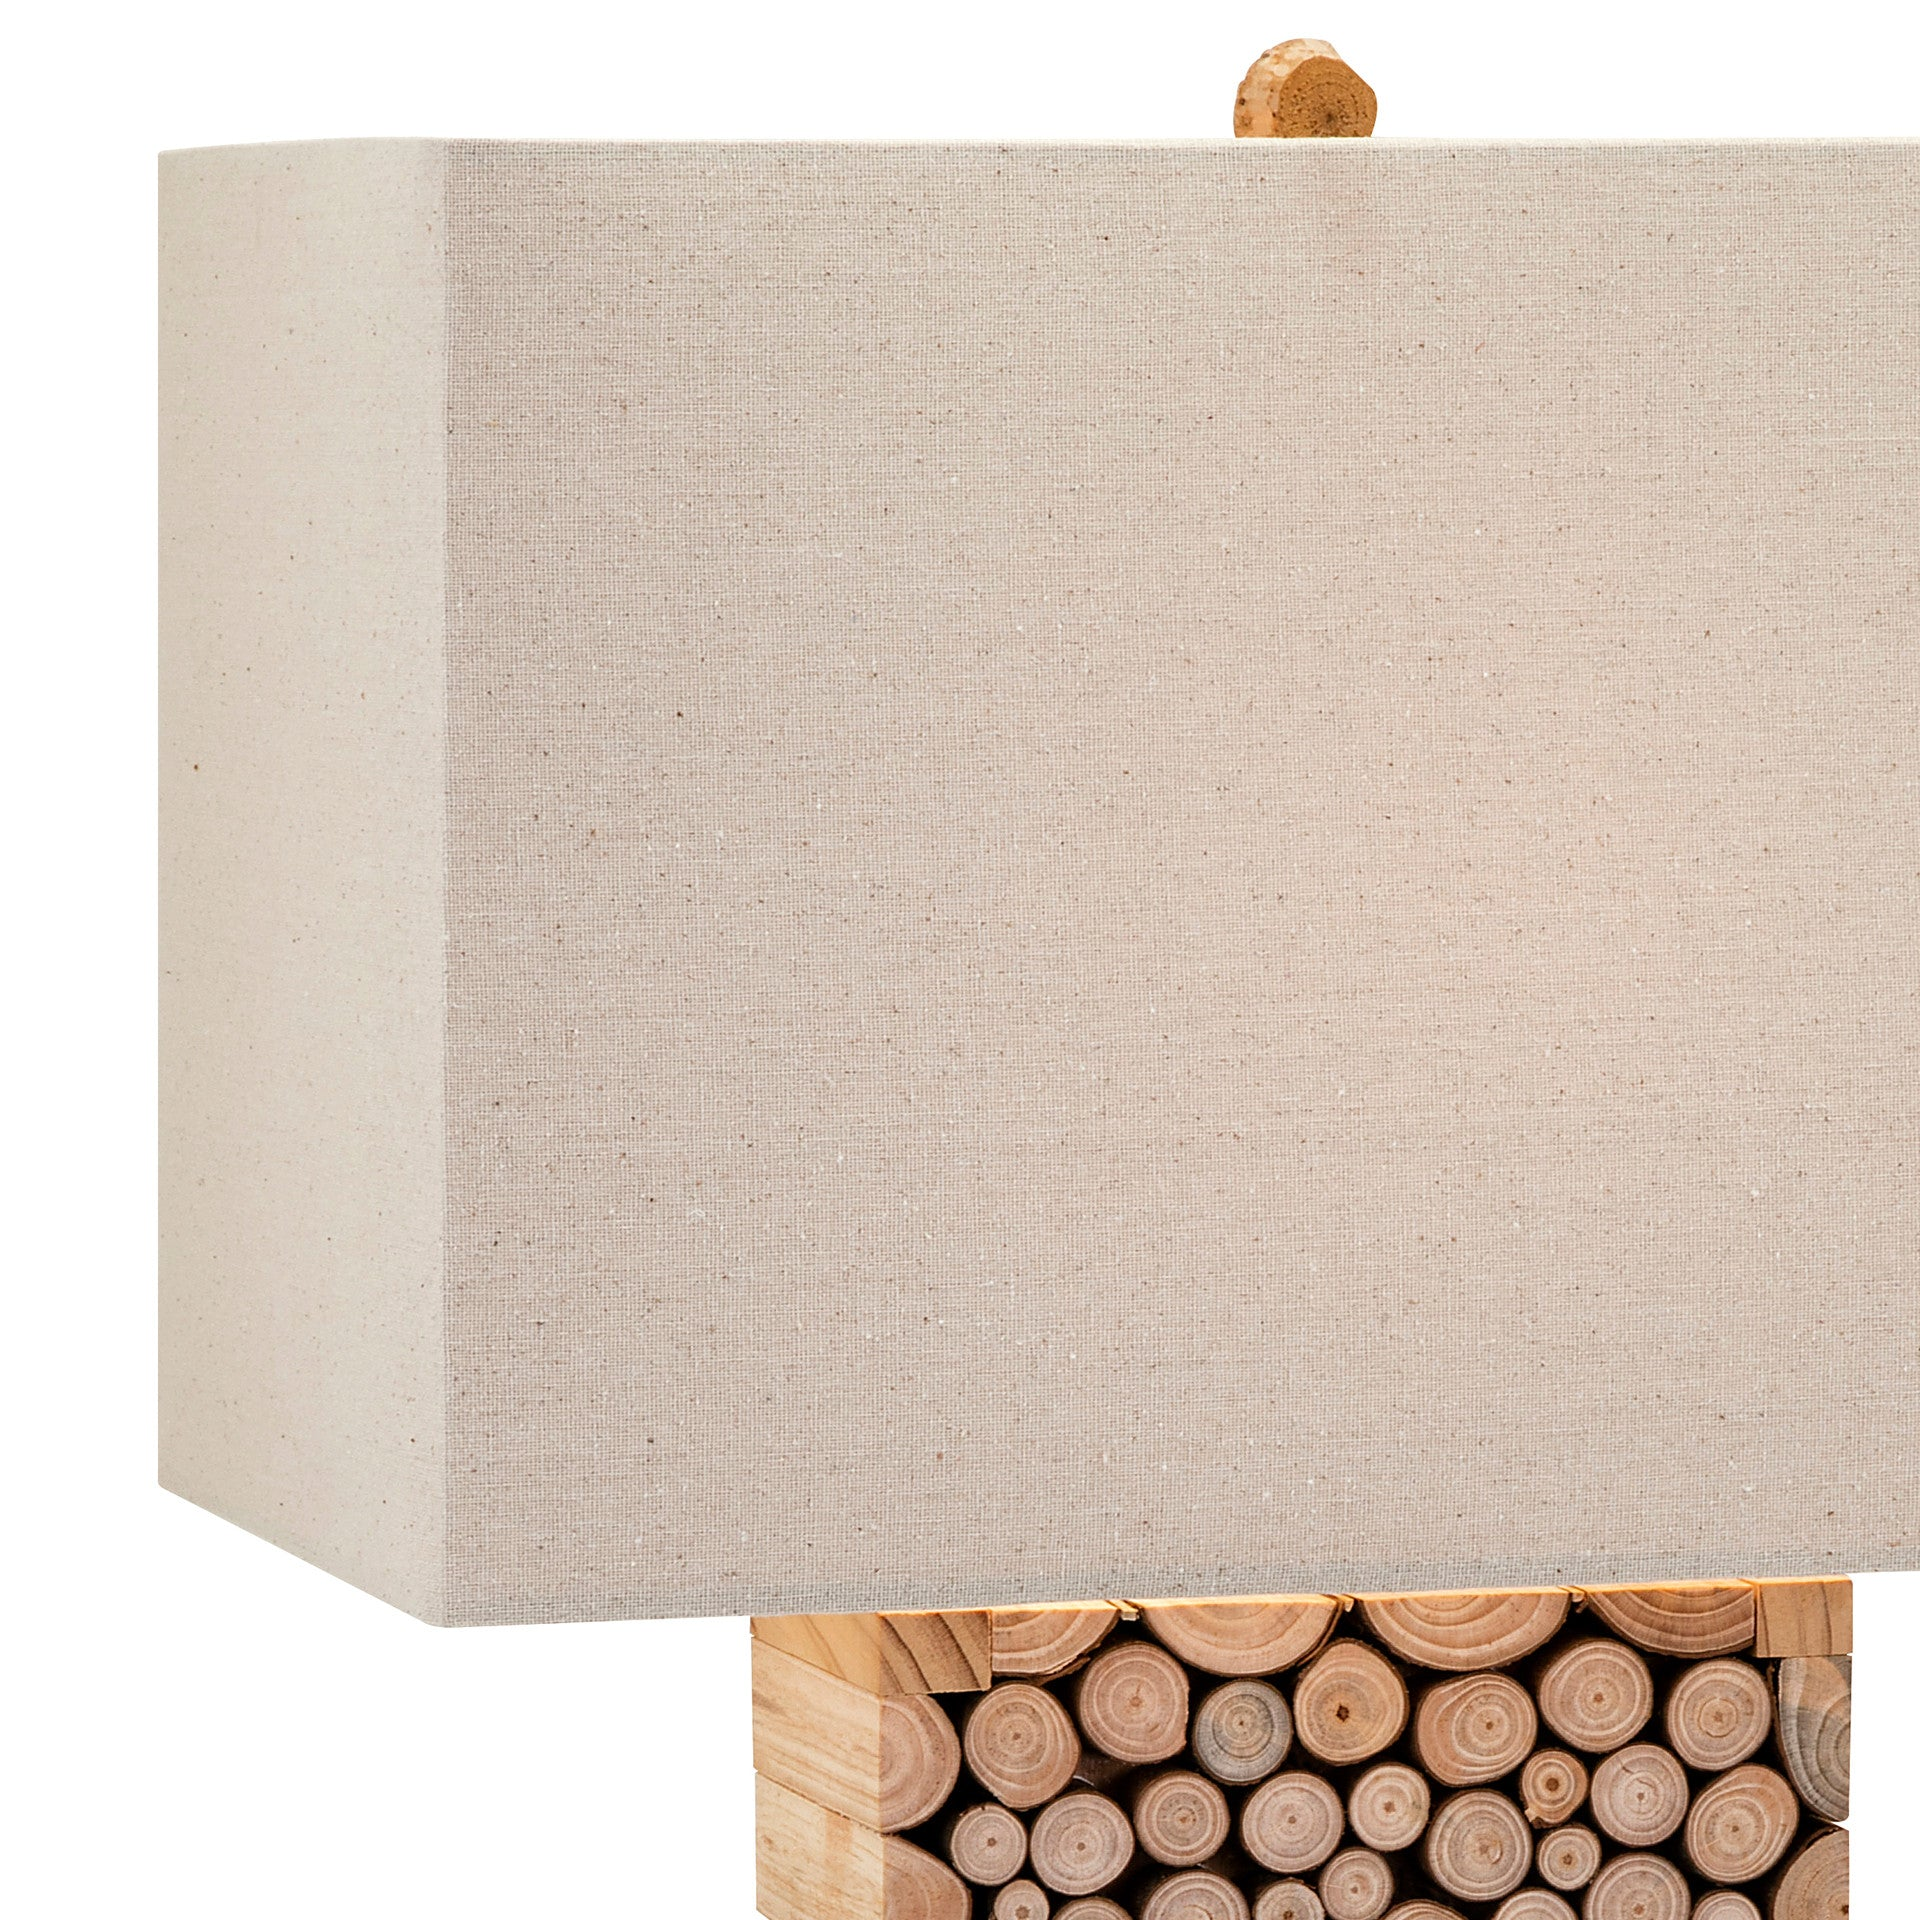 Preferred Modern Wood Tree Branch Table Lamp - Woodwaves OB87